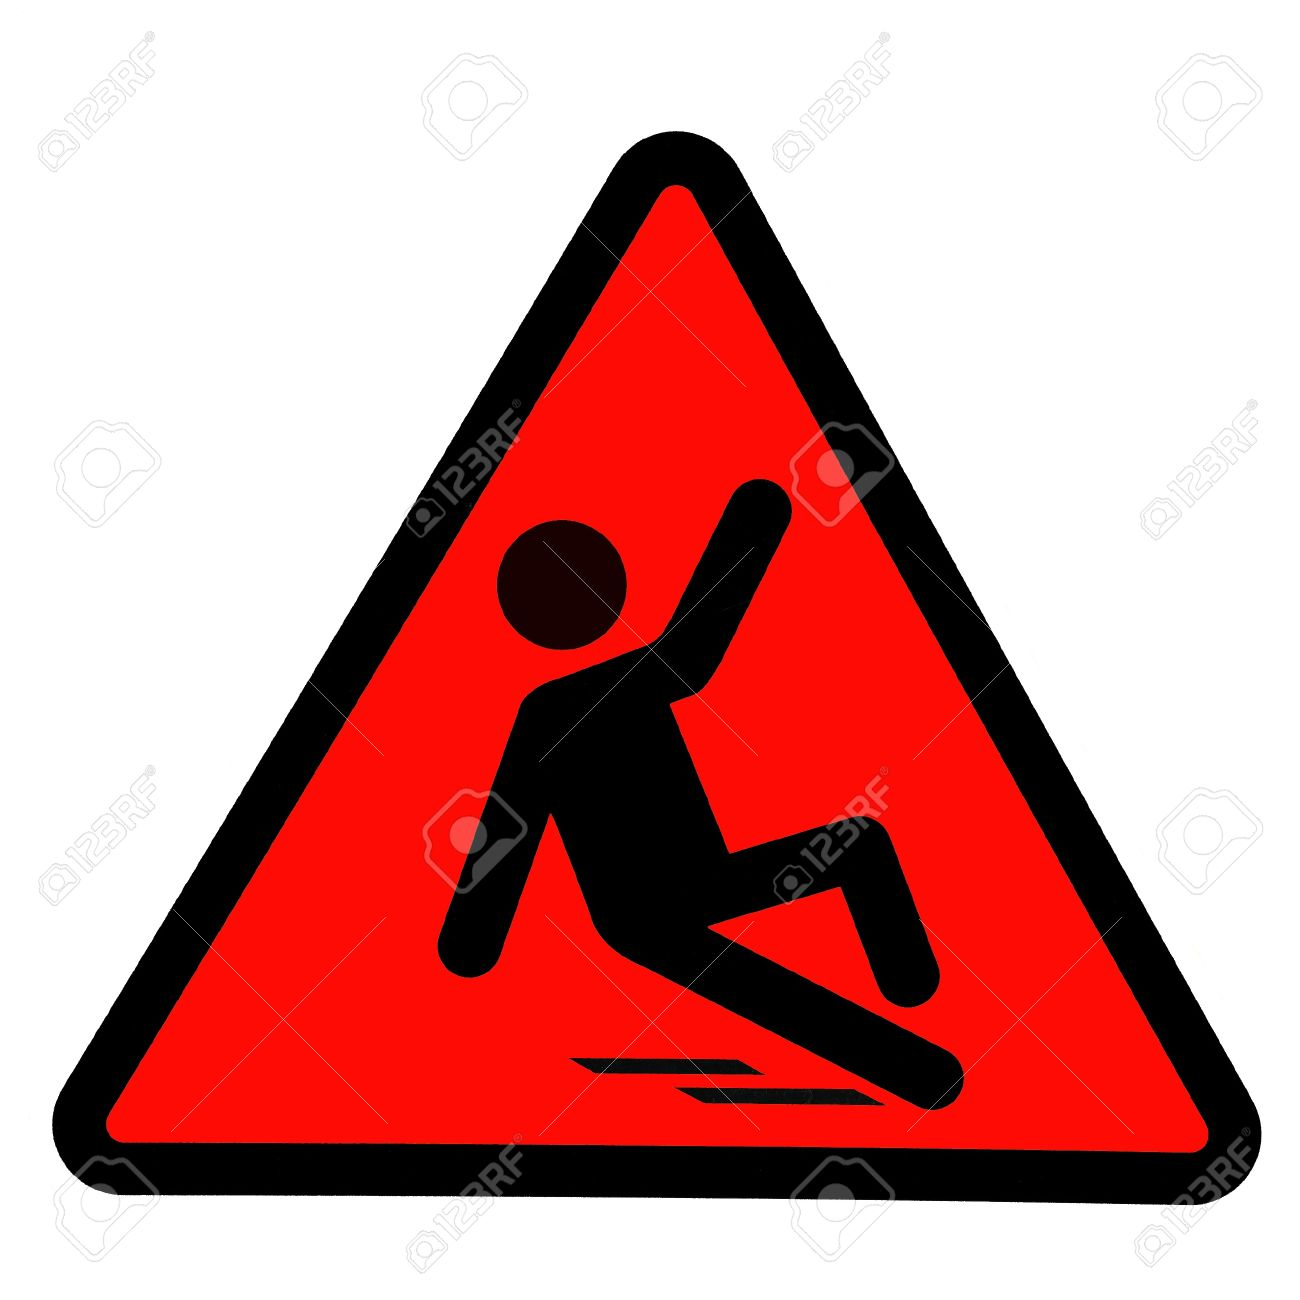 risk clipart - photo #49